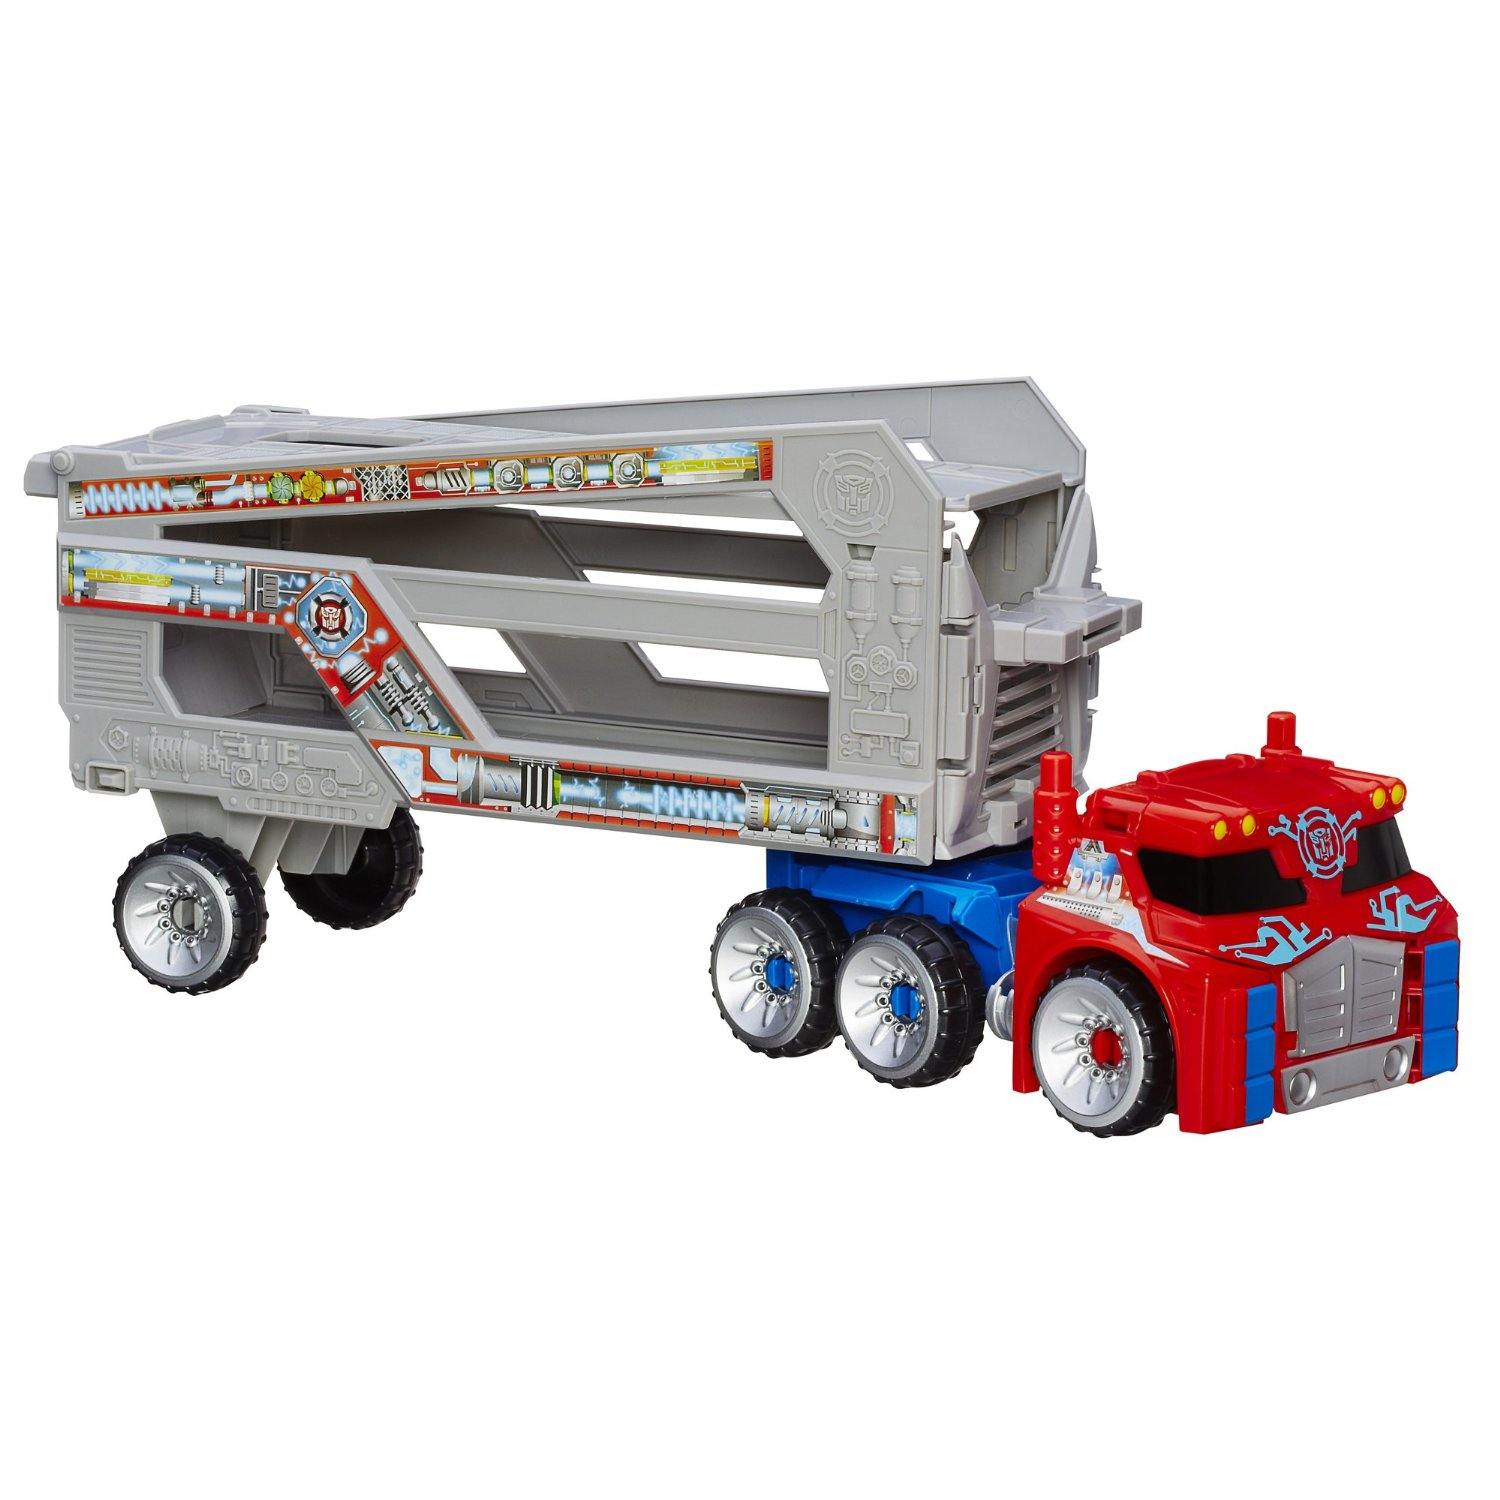 Optimus Prime Rescue Trailer - Transformers Toys - TFW2005